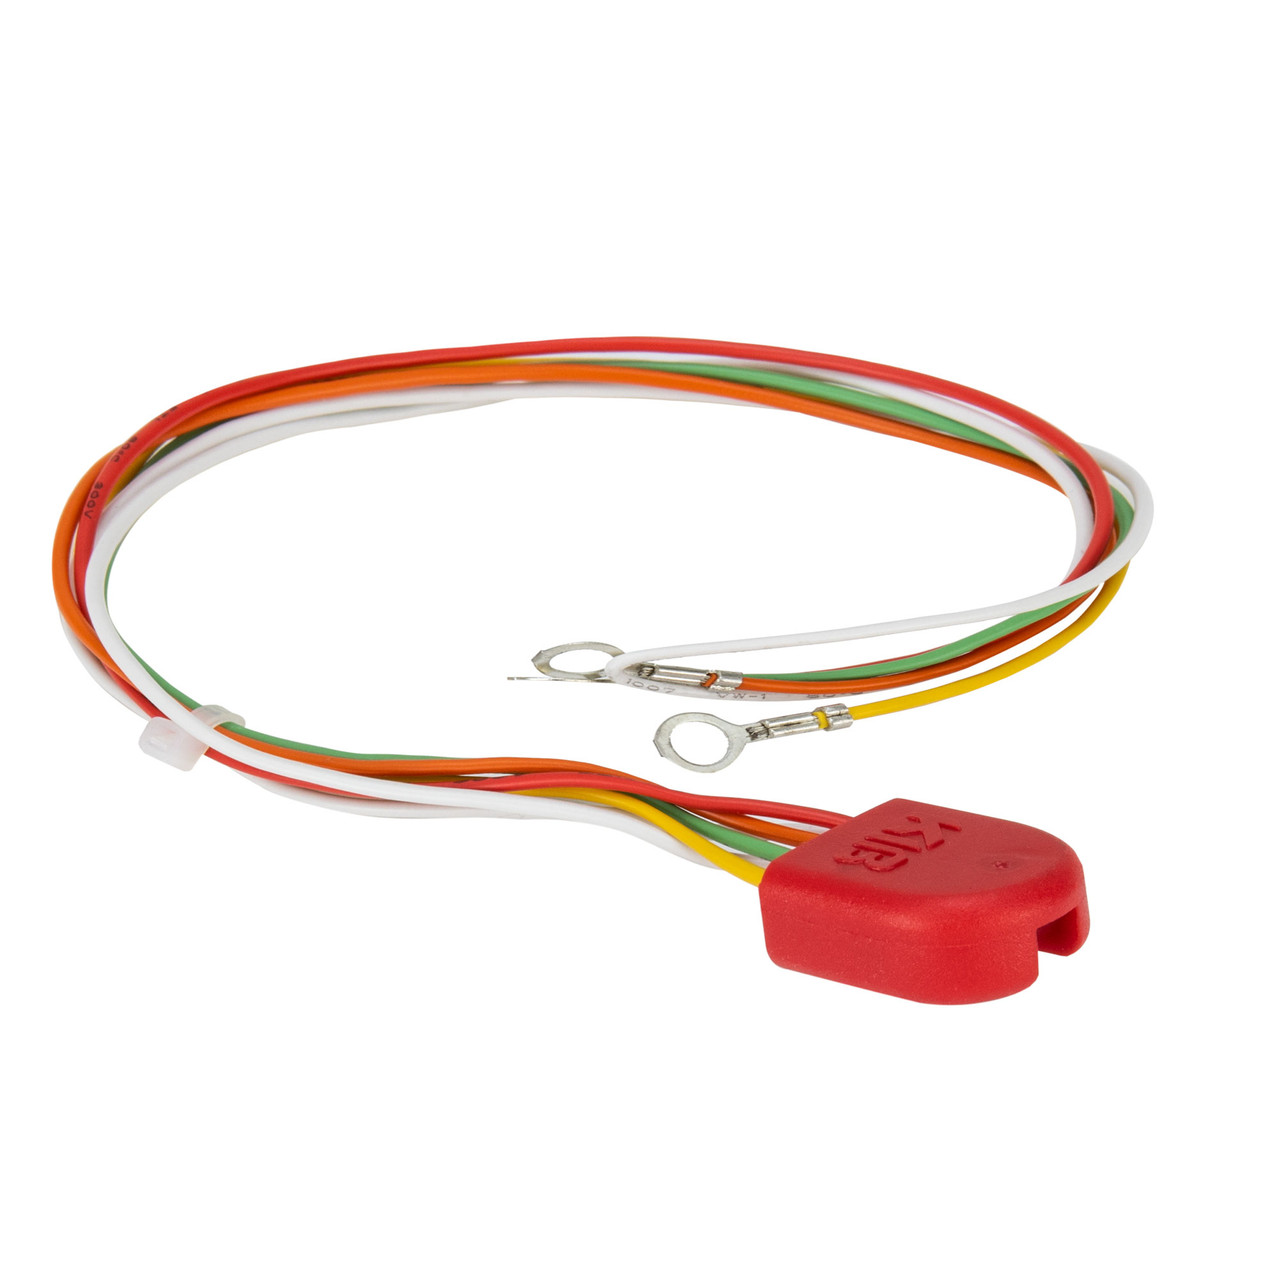 RV Replacement Tank Wire Harness for Sensor Probes - RecProRecPro